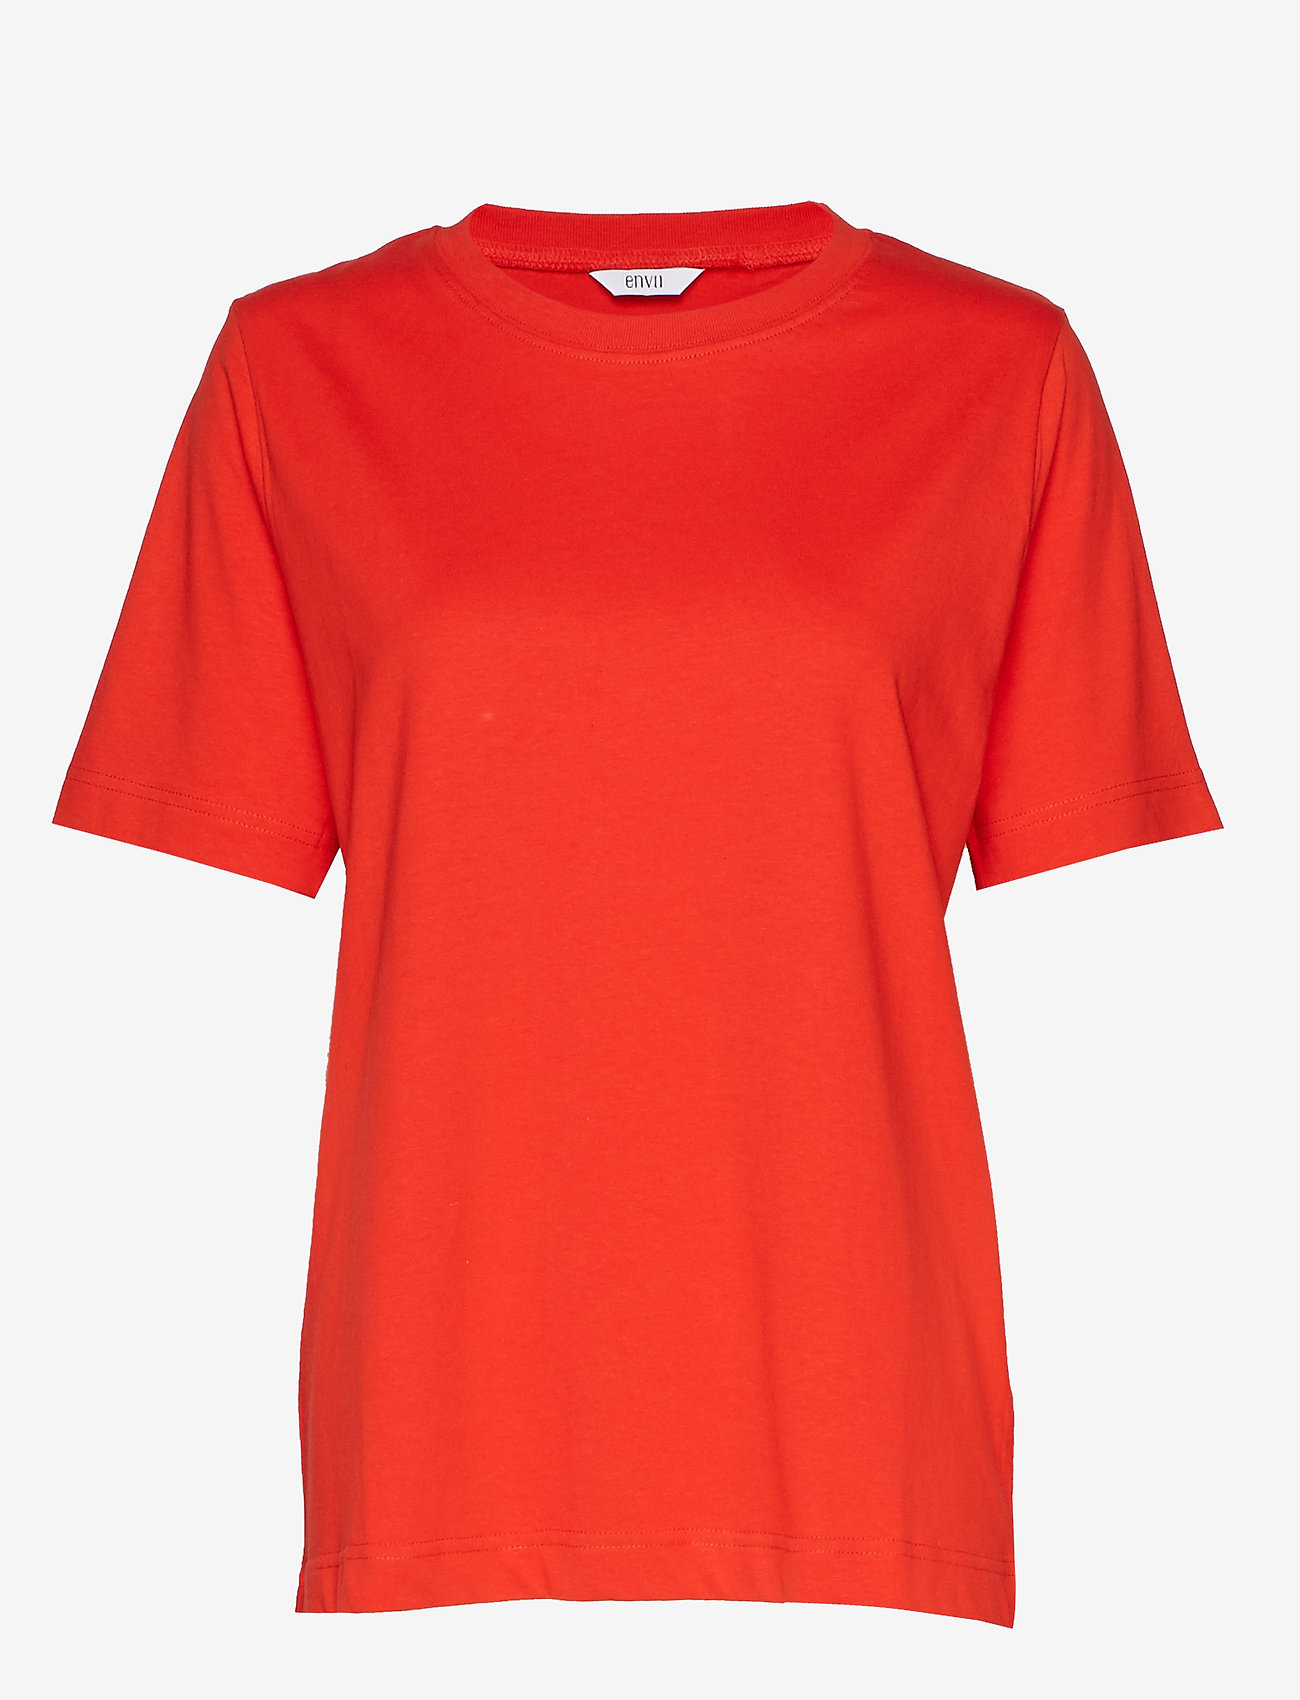 Envii Enbeverly Ss Tee 5310 - T-shirts & Toppar High Risk Red